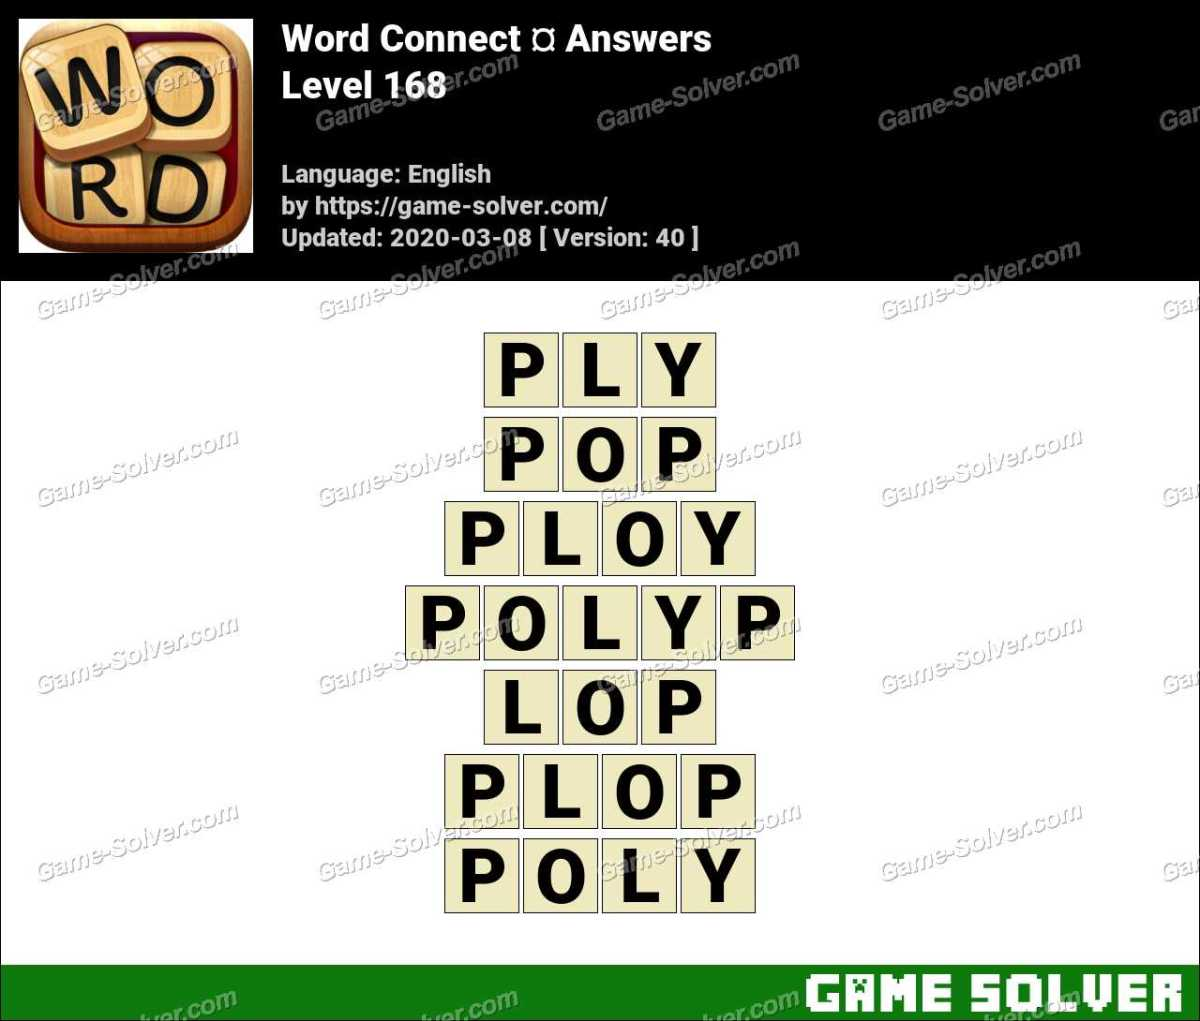 Word Connect Level 168 Answers